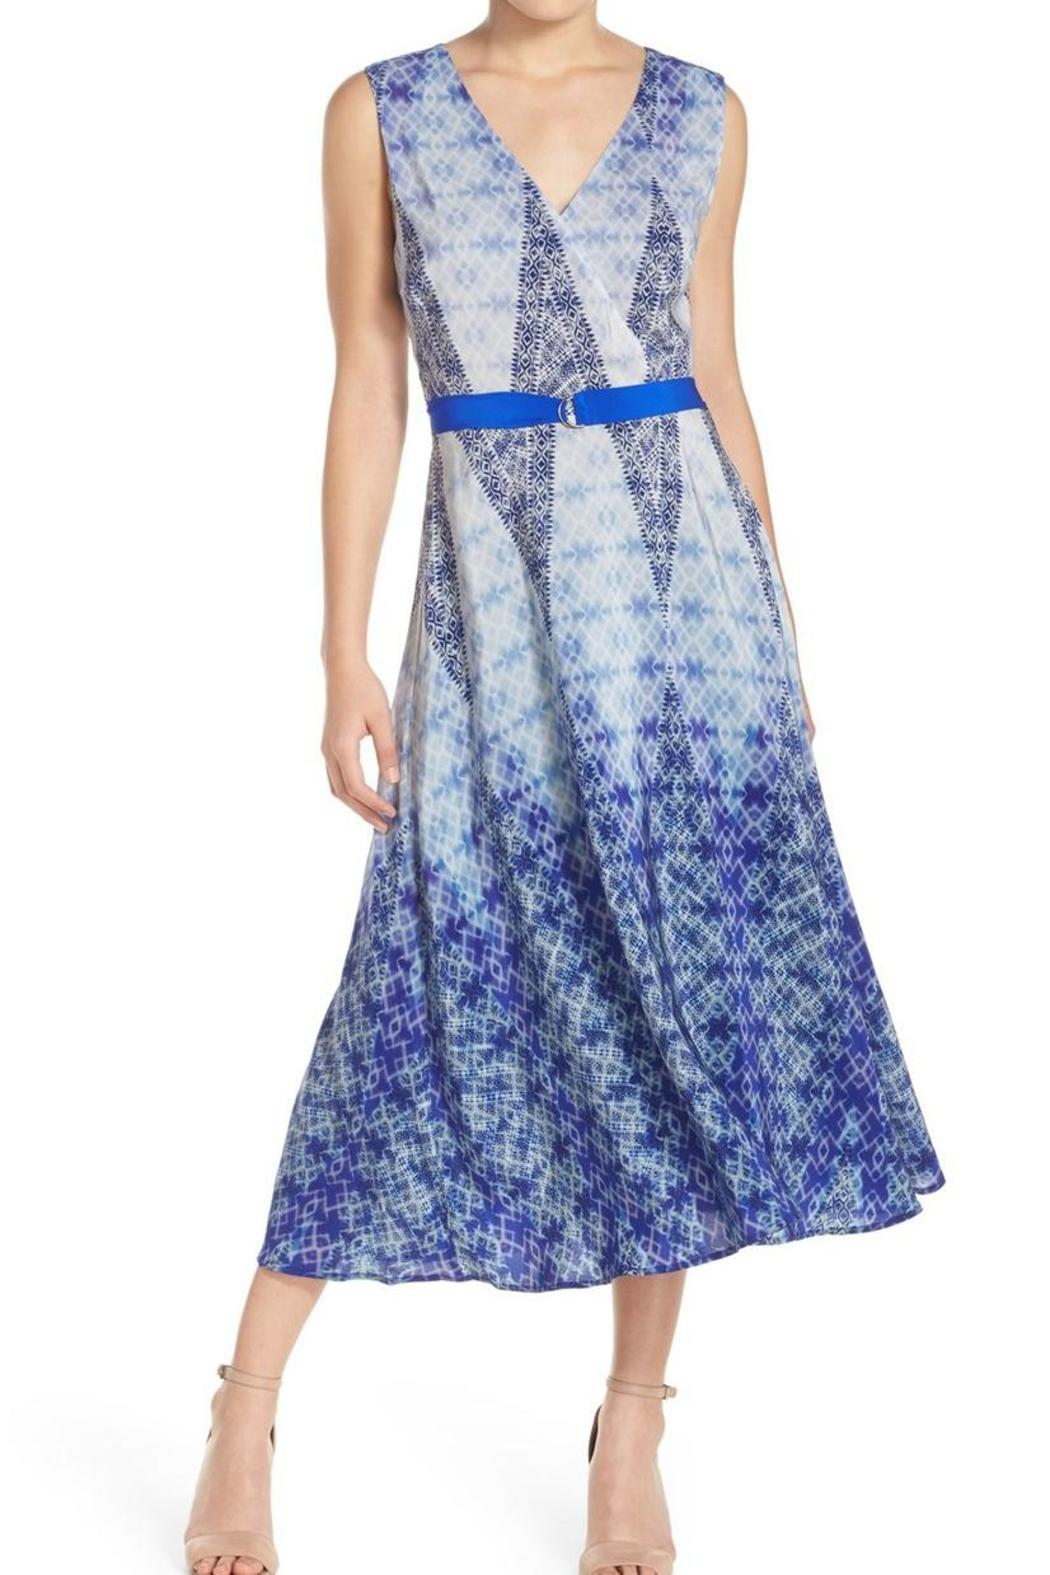 Charlie Jade Starla Midi Dress - Front Cropped Image